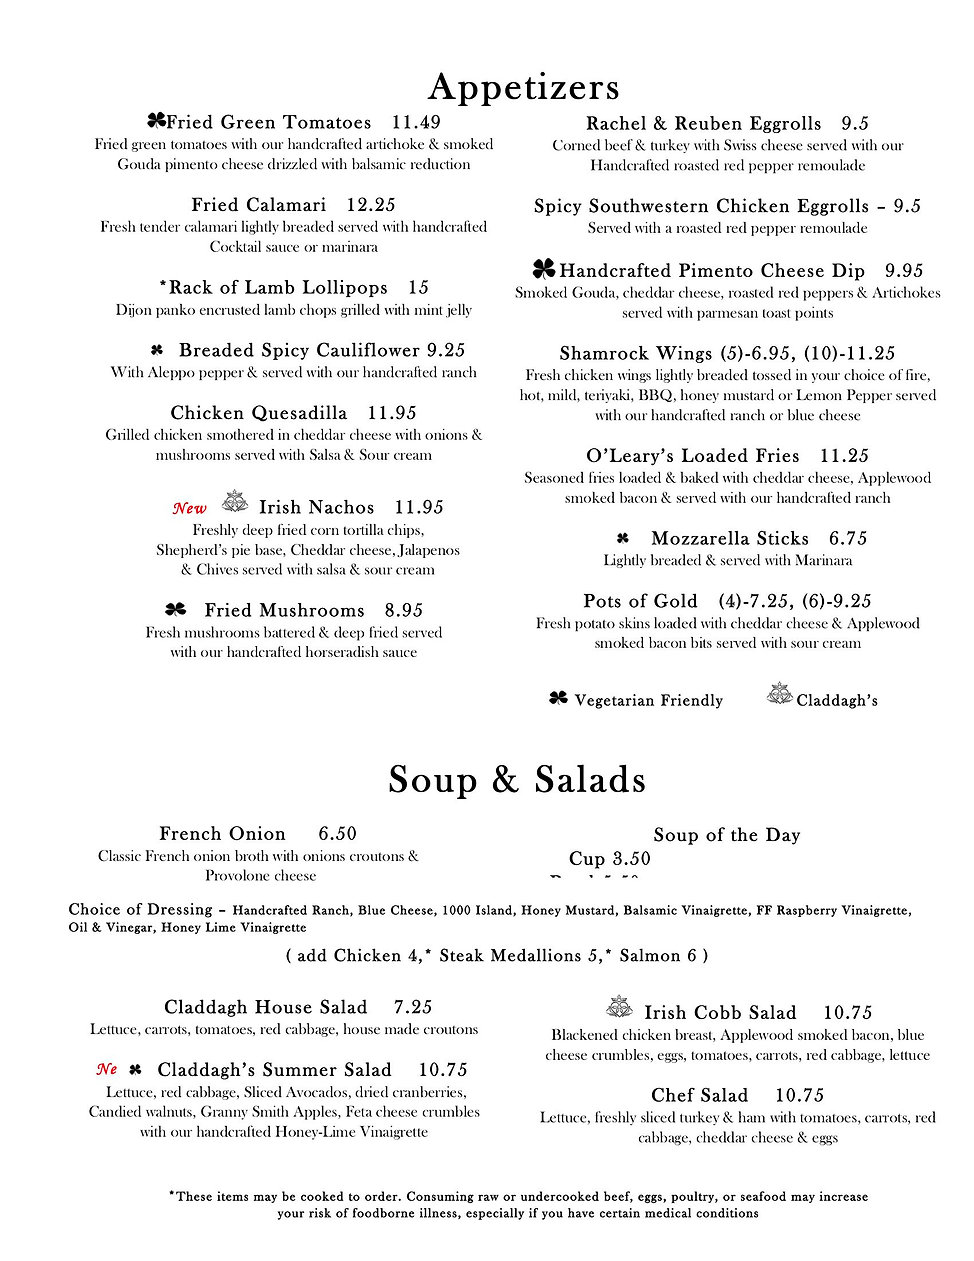 Claddagh High Point New Menu may 2020.jp